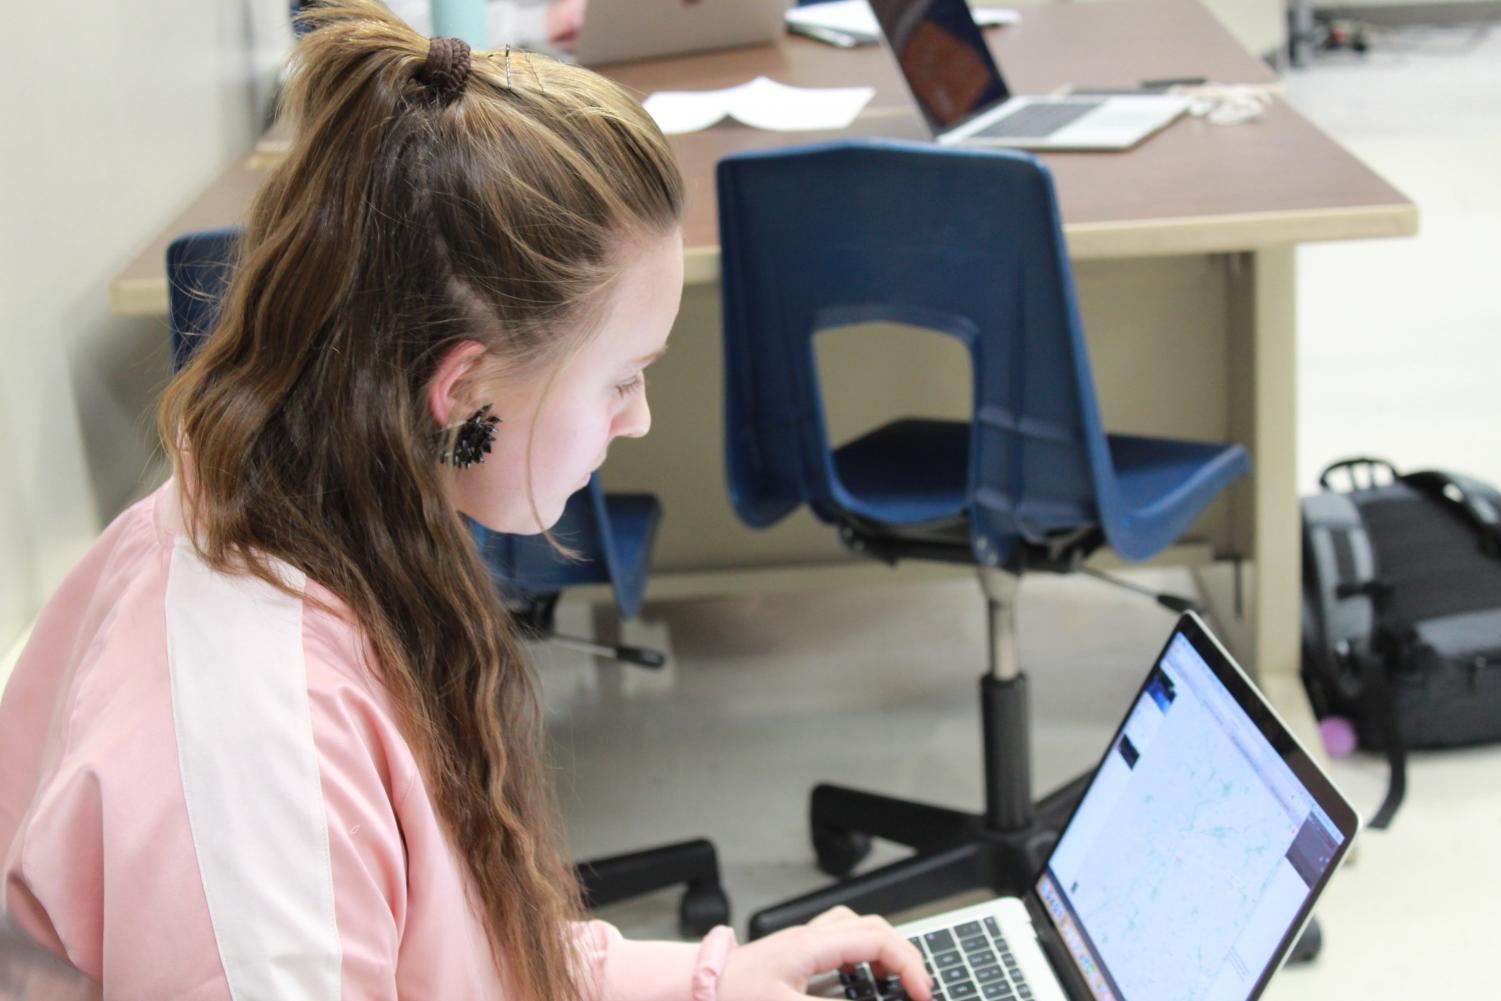 Senior Julia Wasik focuses on getting her work done.